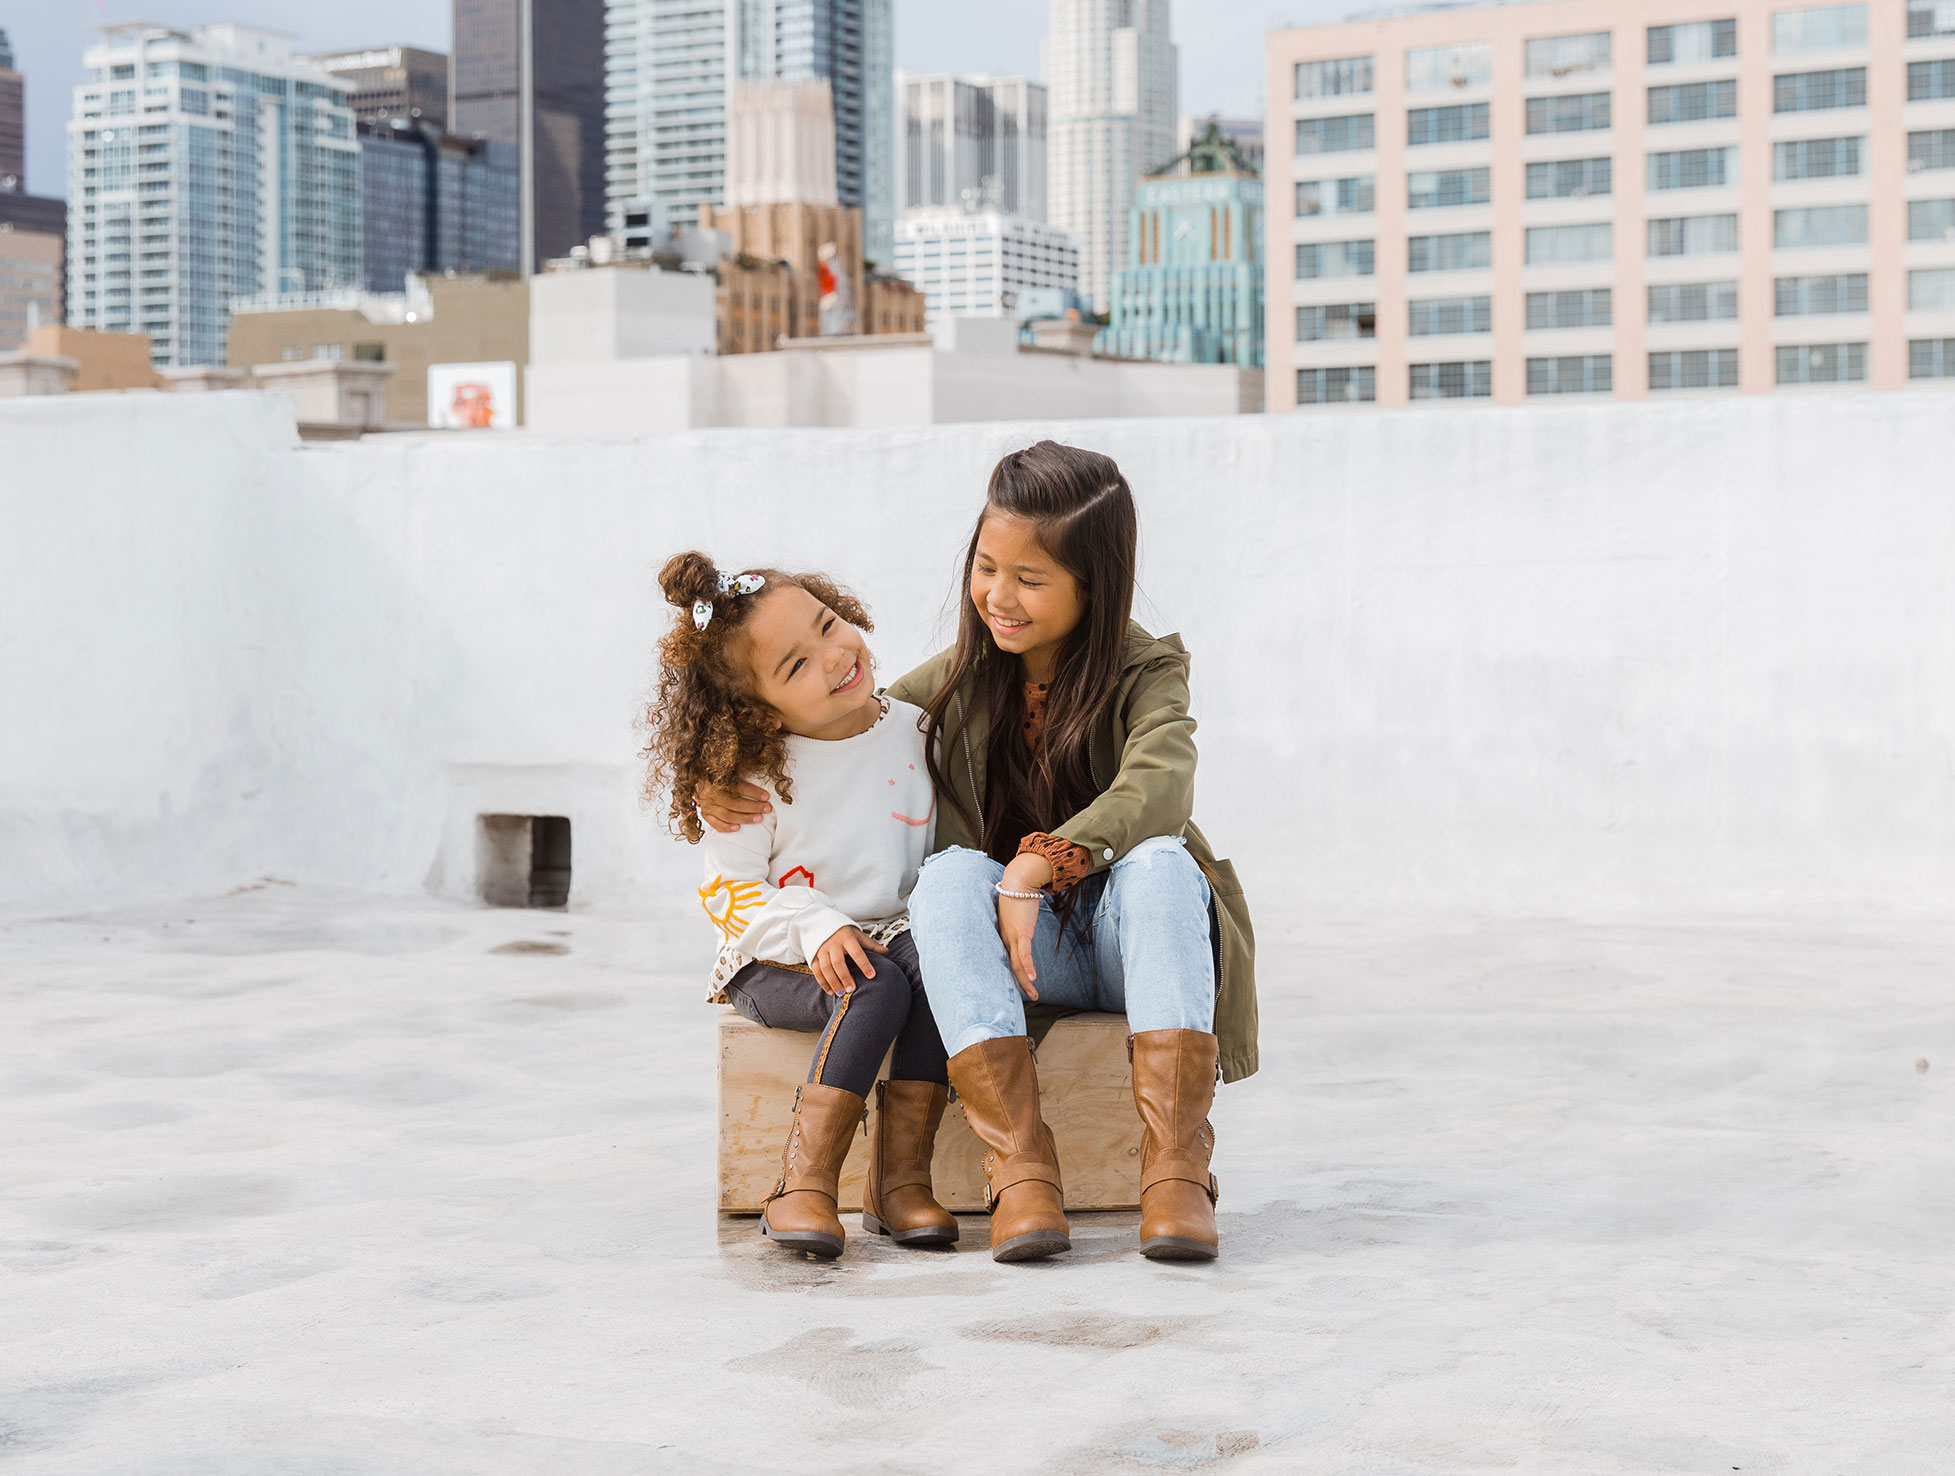 https://uat.blowfishshoes.com/wp-content/uploads/2019/09/Kids-Collection-Header.jpg